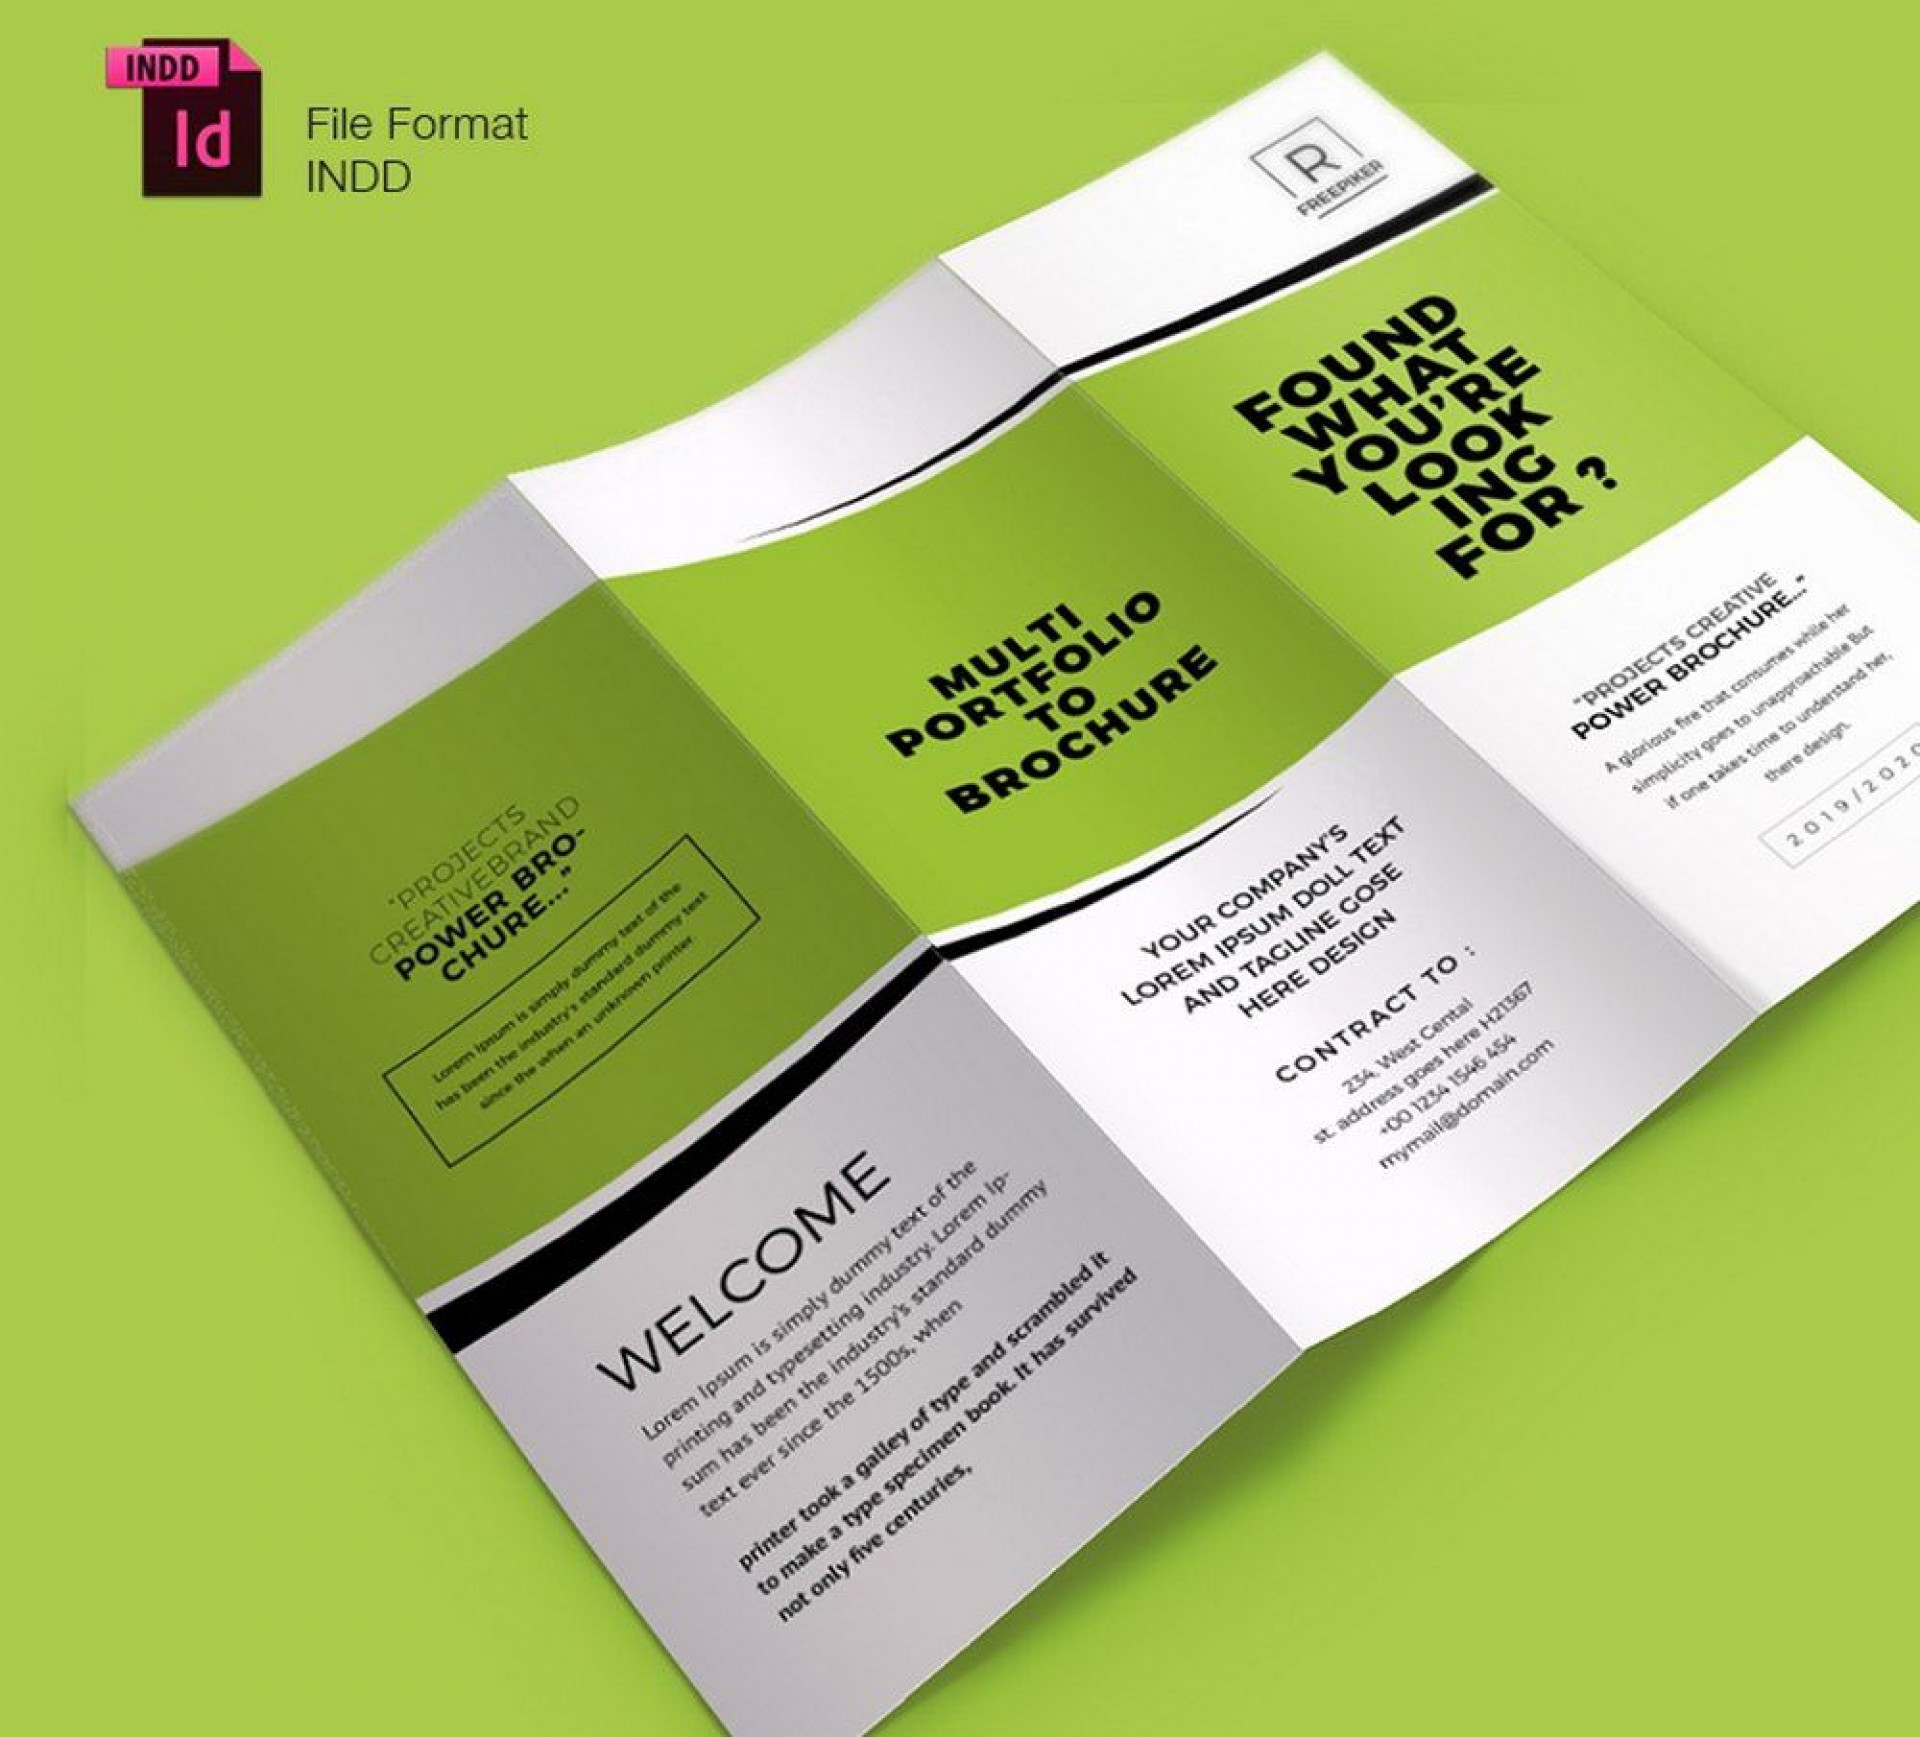 003 Outstanding Free Trifold Brochure Template Inspiration  Tri Fold For Publisher Word Microsoft1920